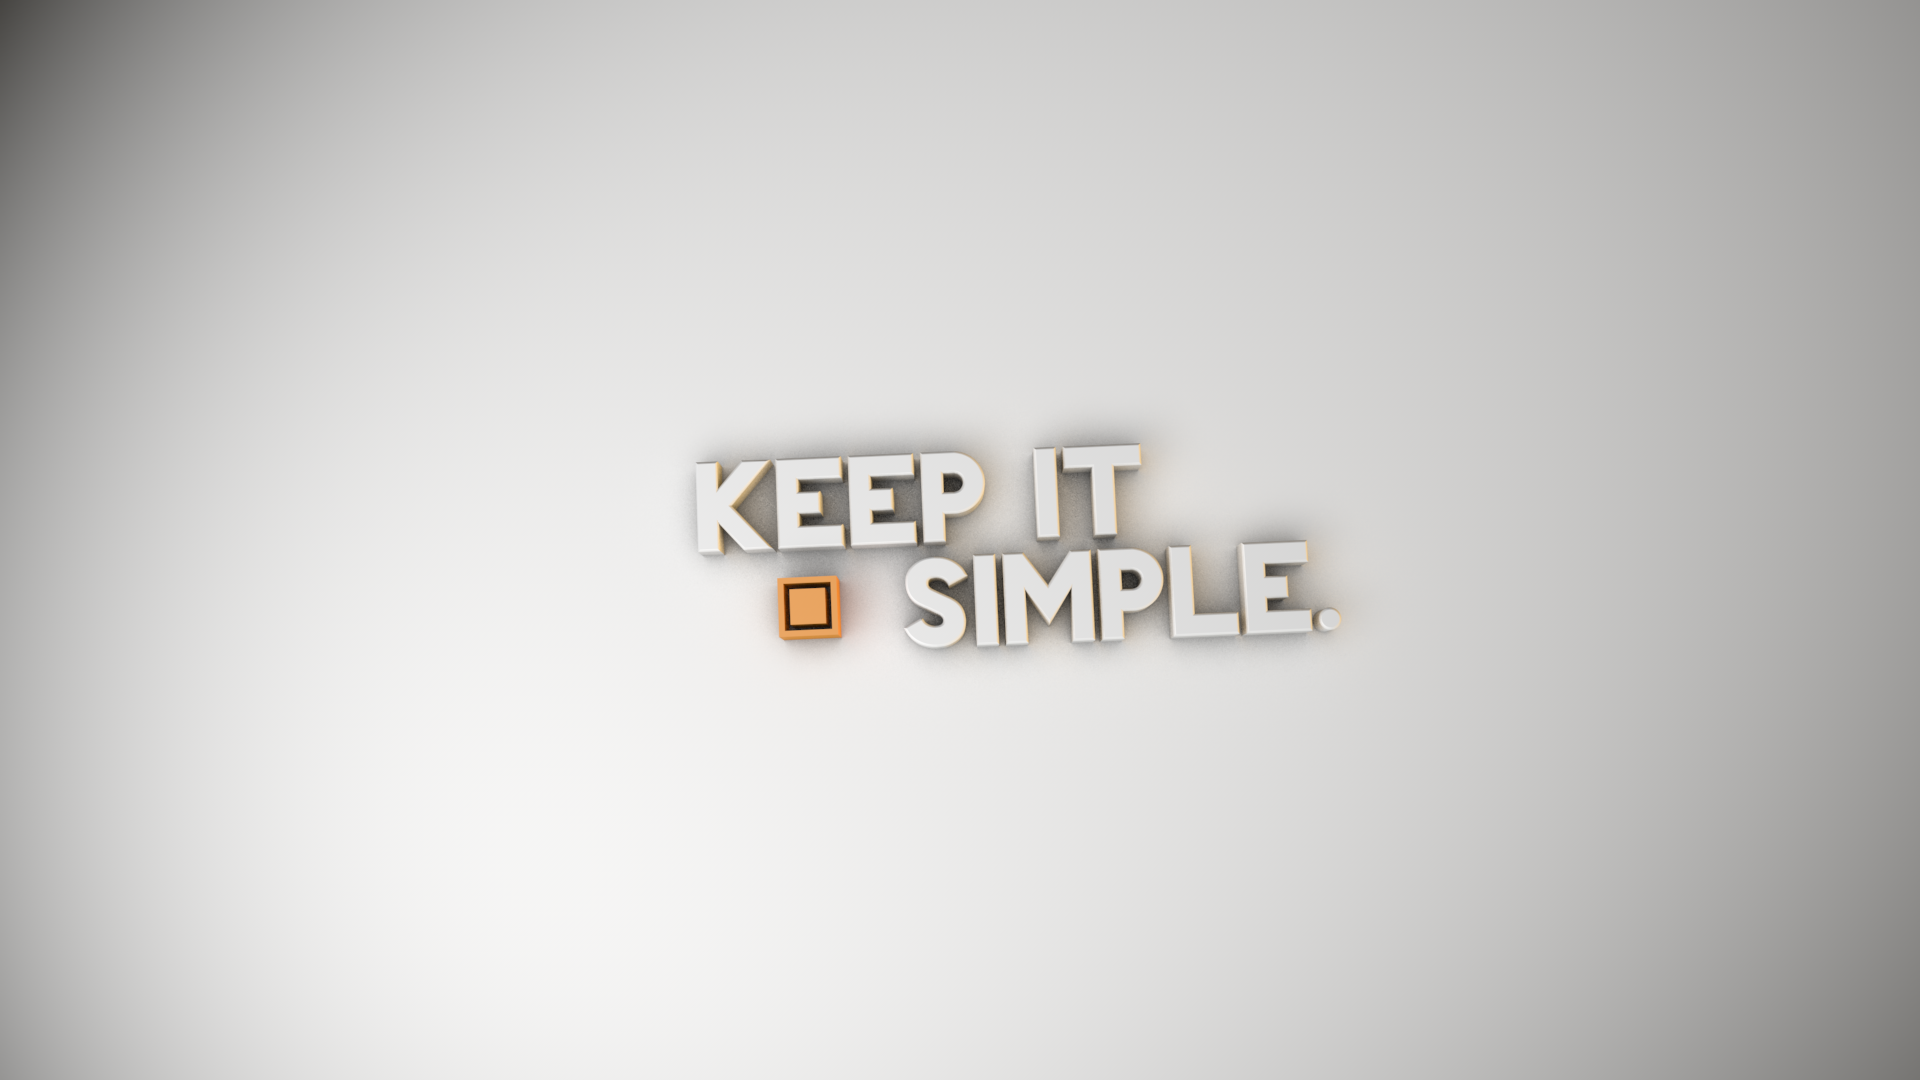 Keep Simple Wallpaper Free Download